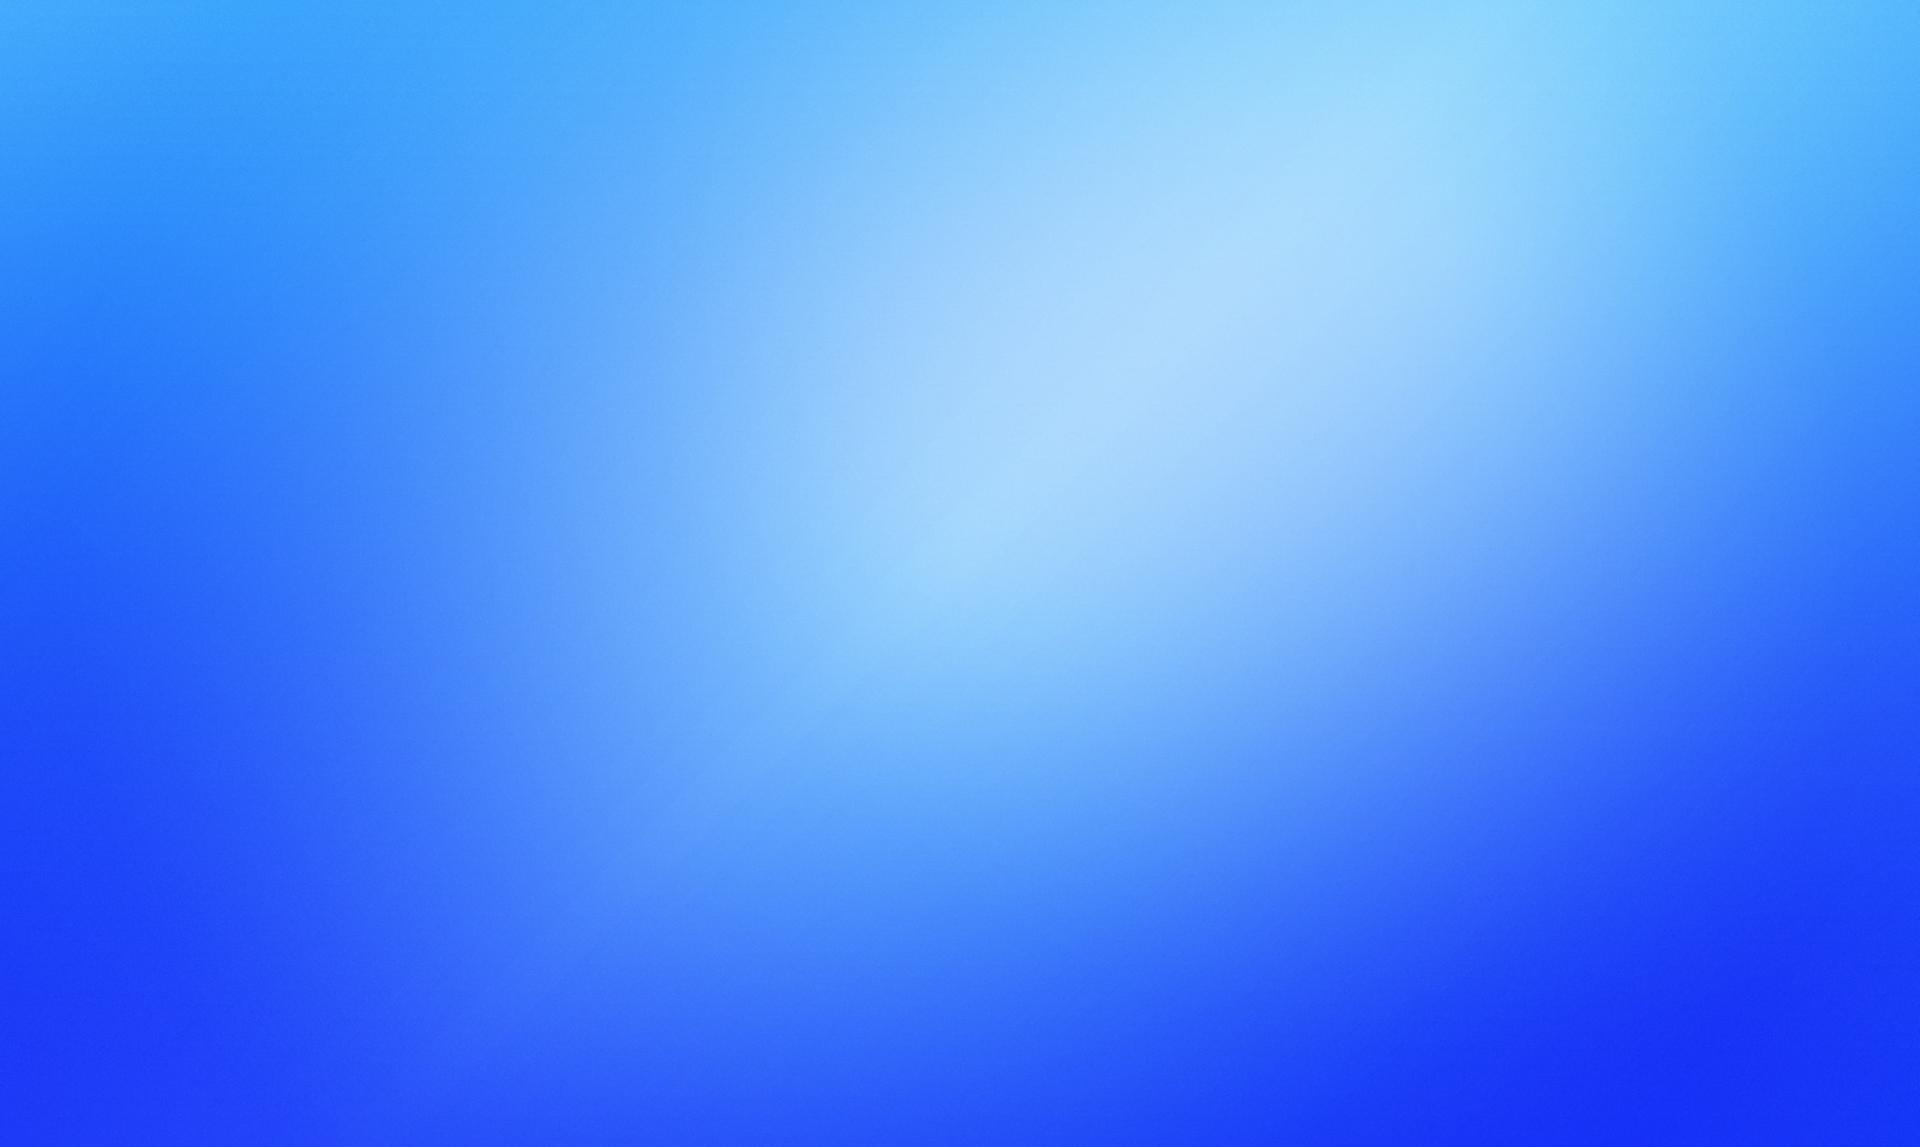 Blue blur wallpapers HD quality